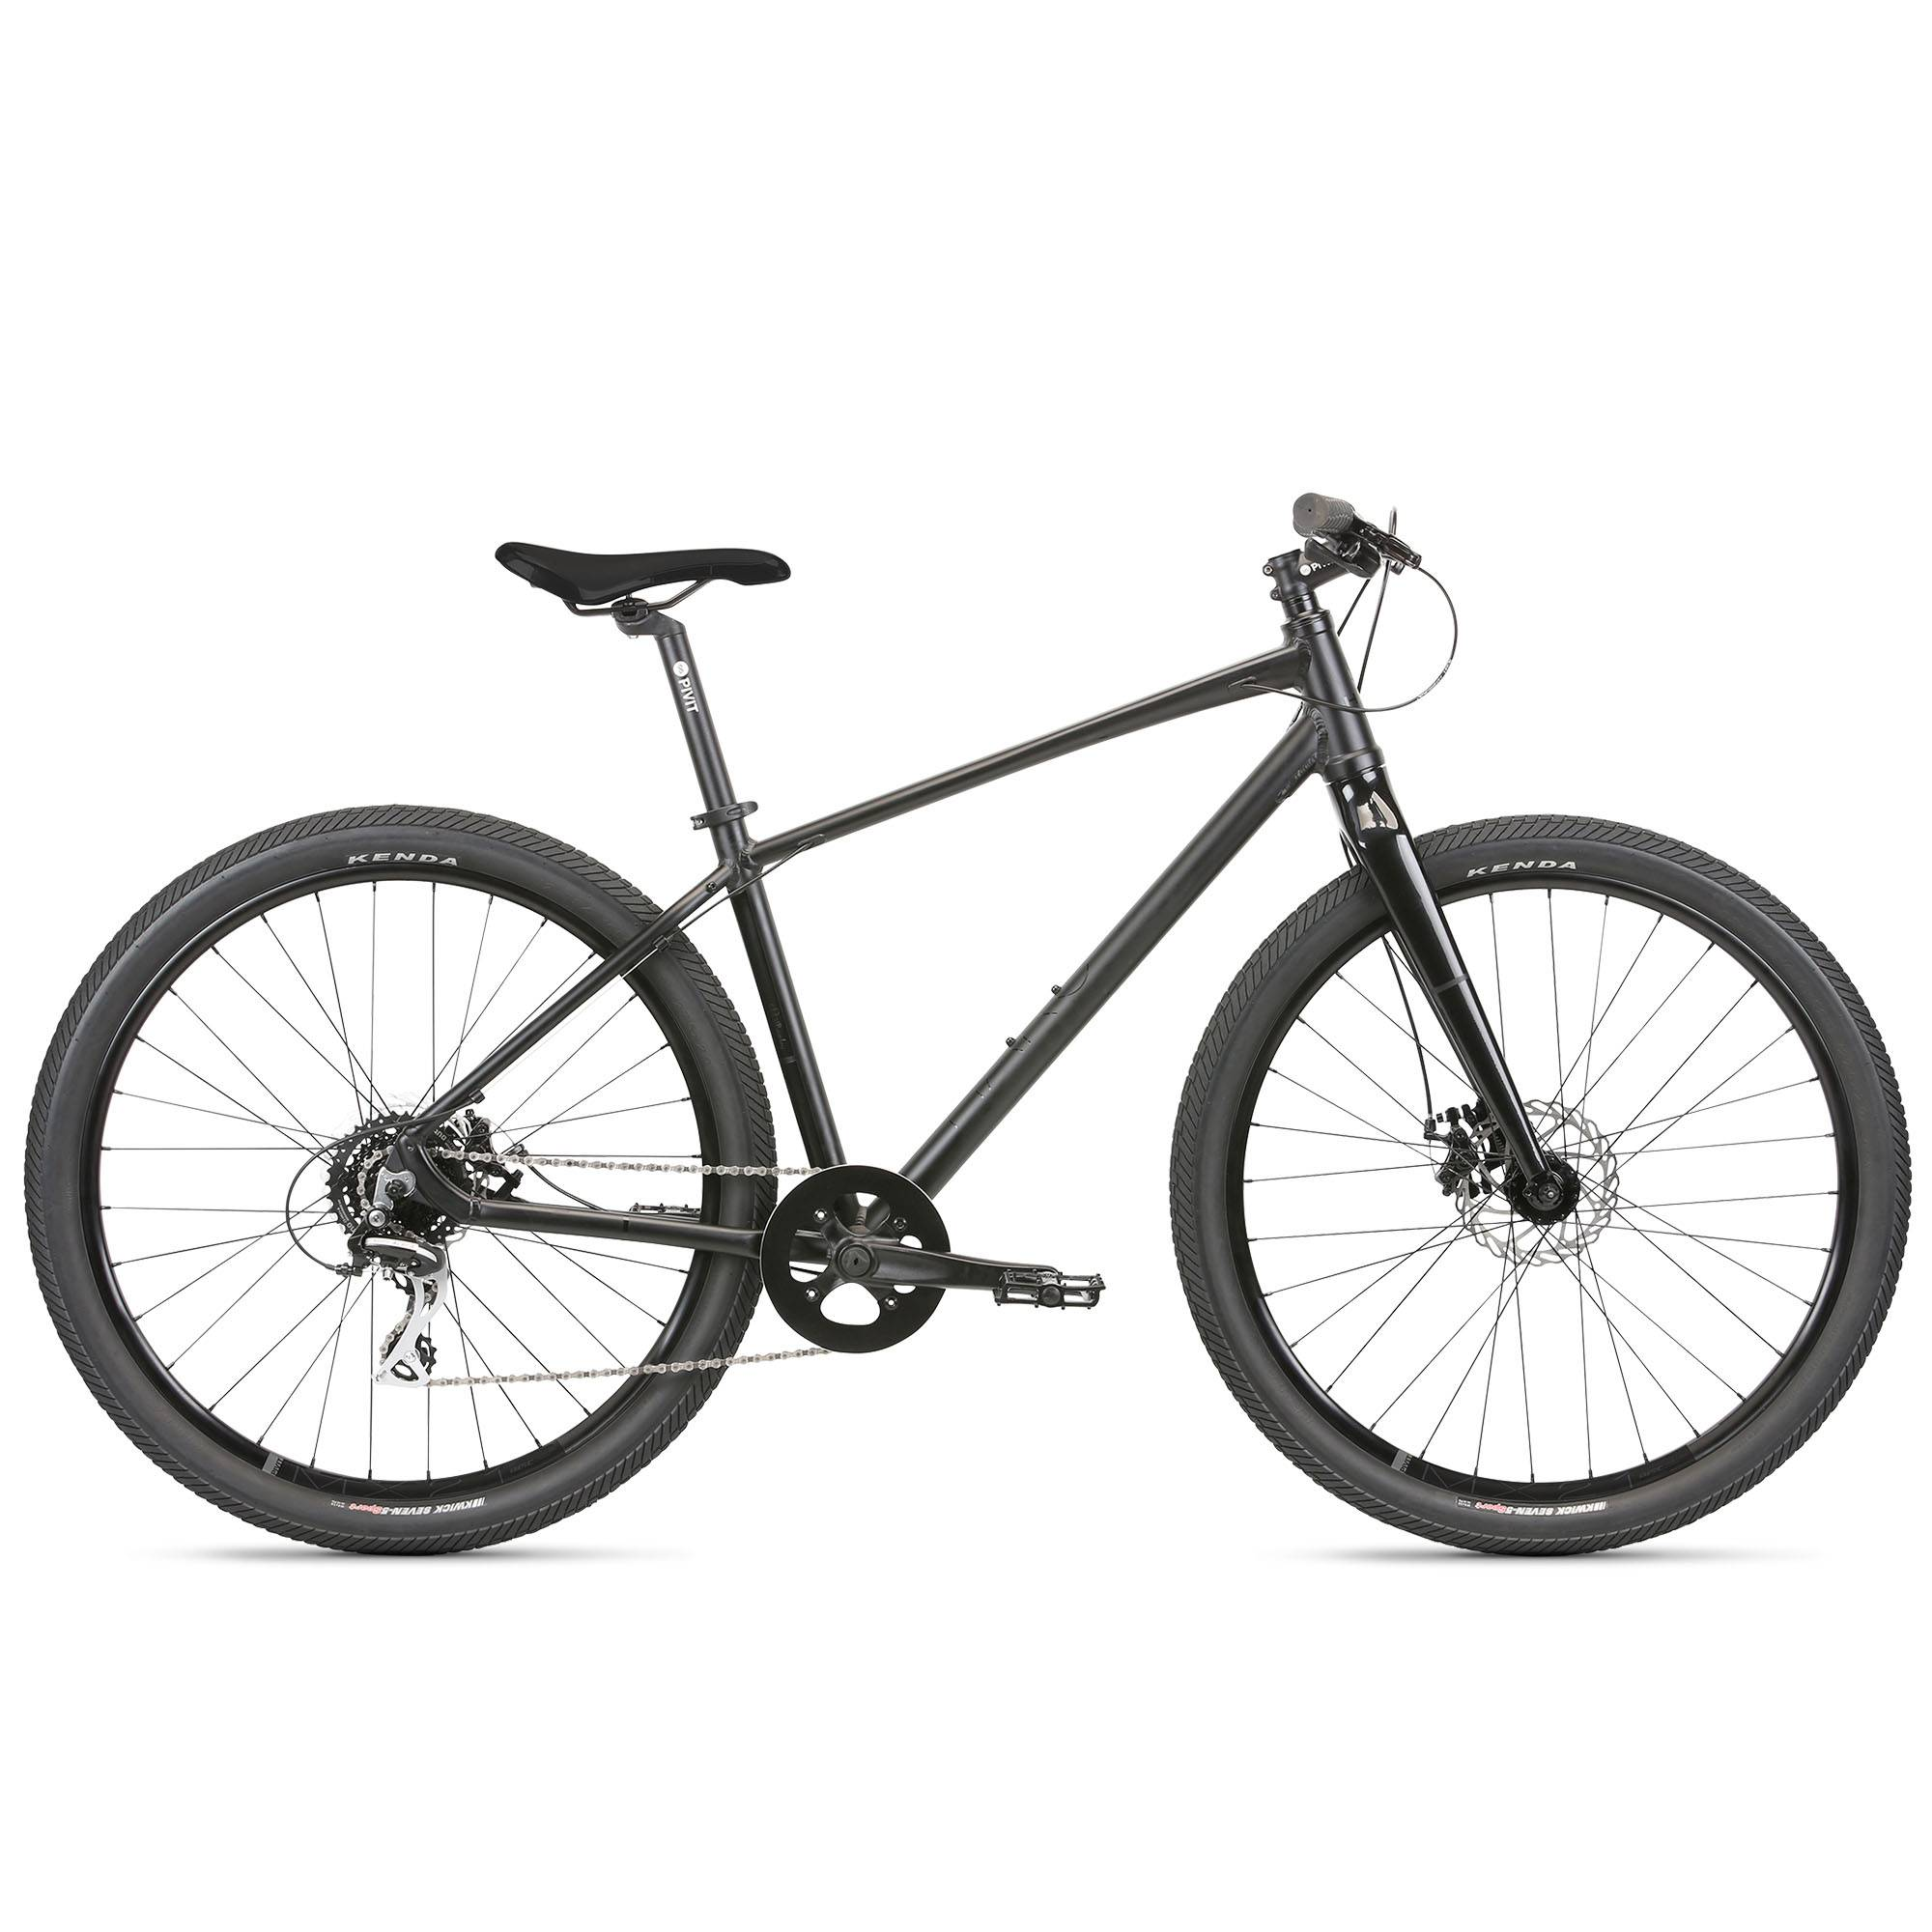 Haro Beasley 27.5 Urban Bike '21  - Matte Black - Size: Large